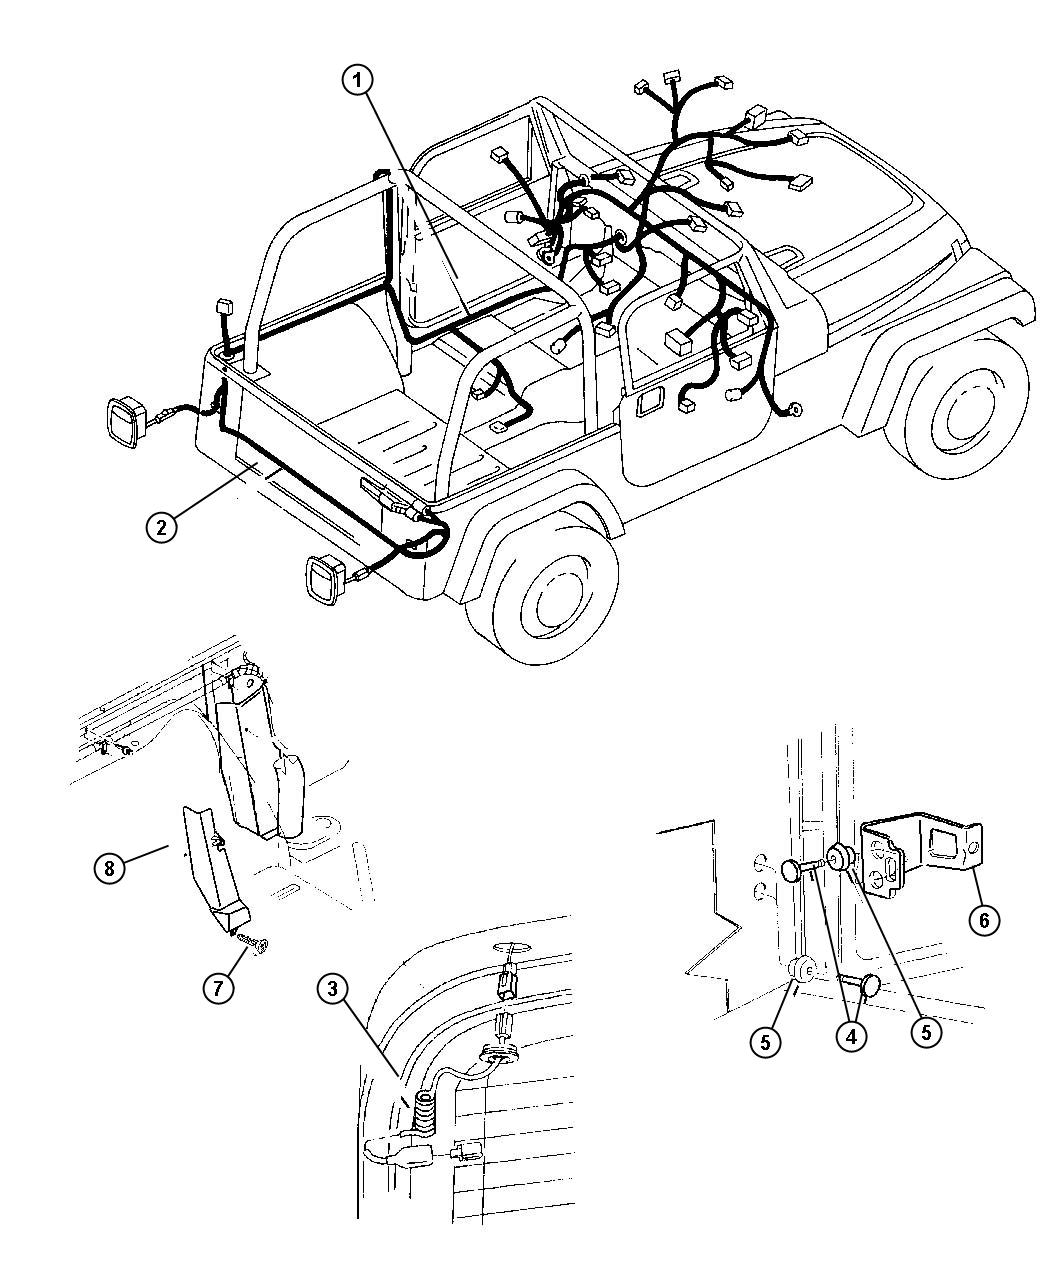 jeep cj7 body mount diagram  jeep  free engine image for